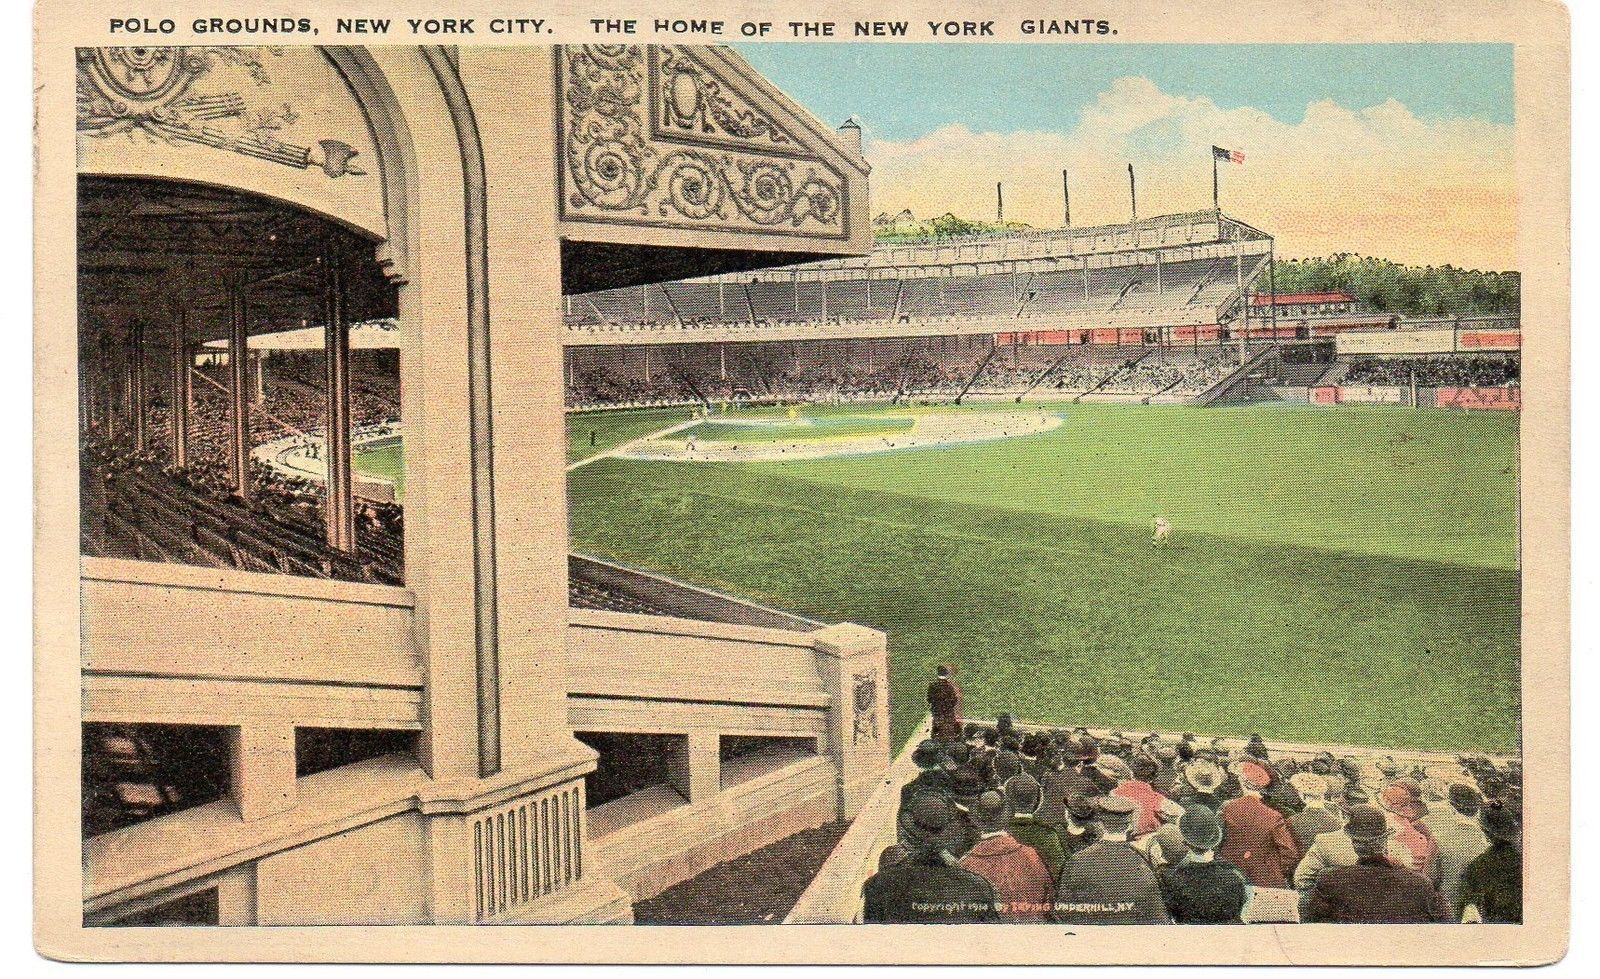 Primary image for POLO GROUNDS Postcard - uncommon, circa 1918